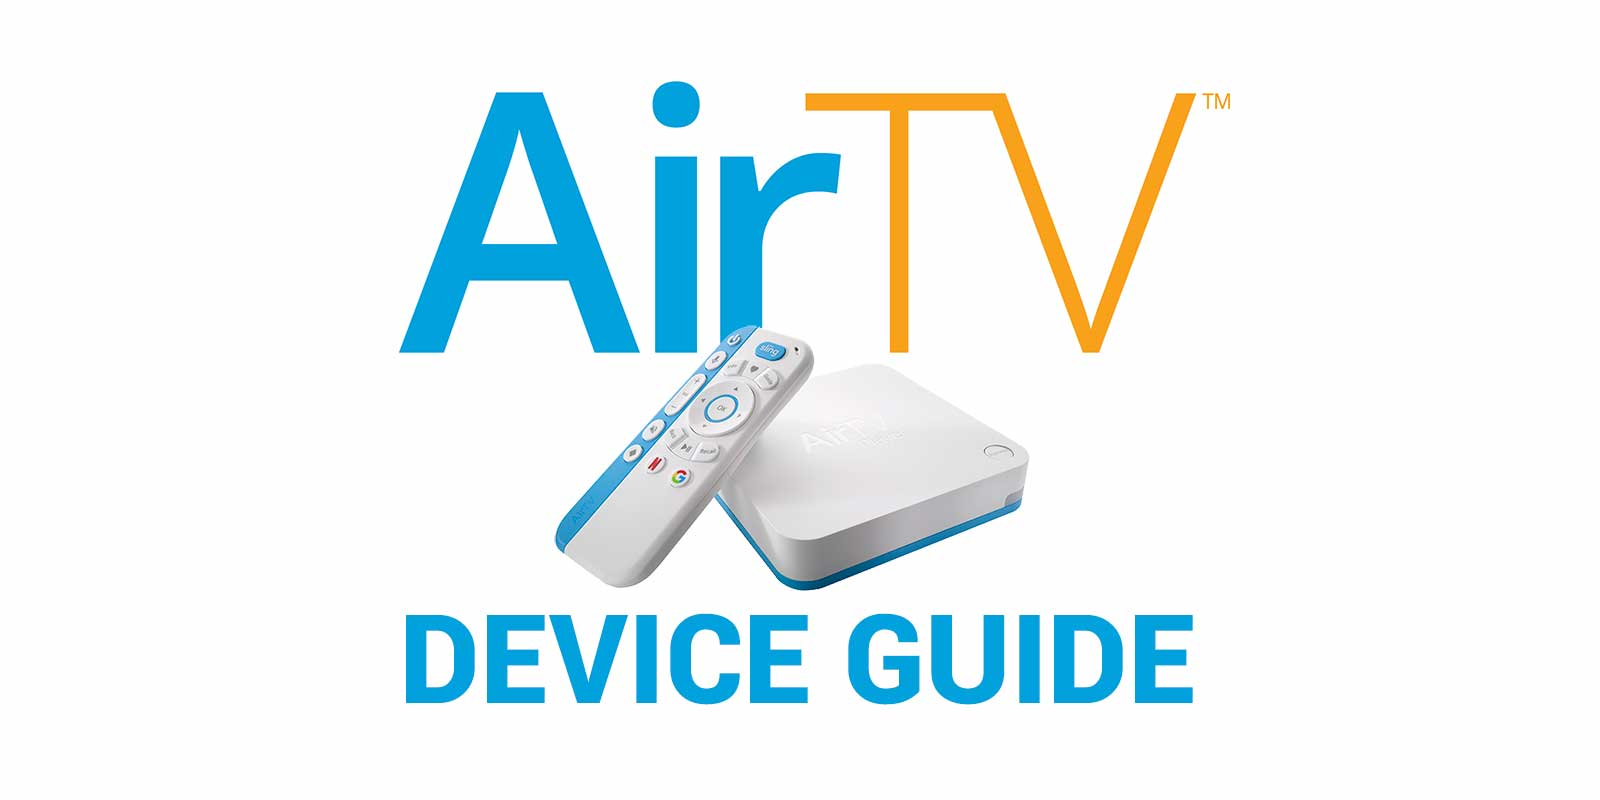 AirTV Player Device Guide - Sling TV's CutTheCord com